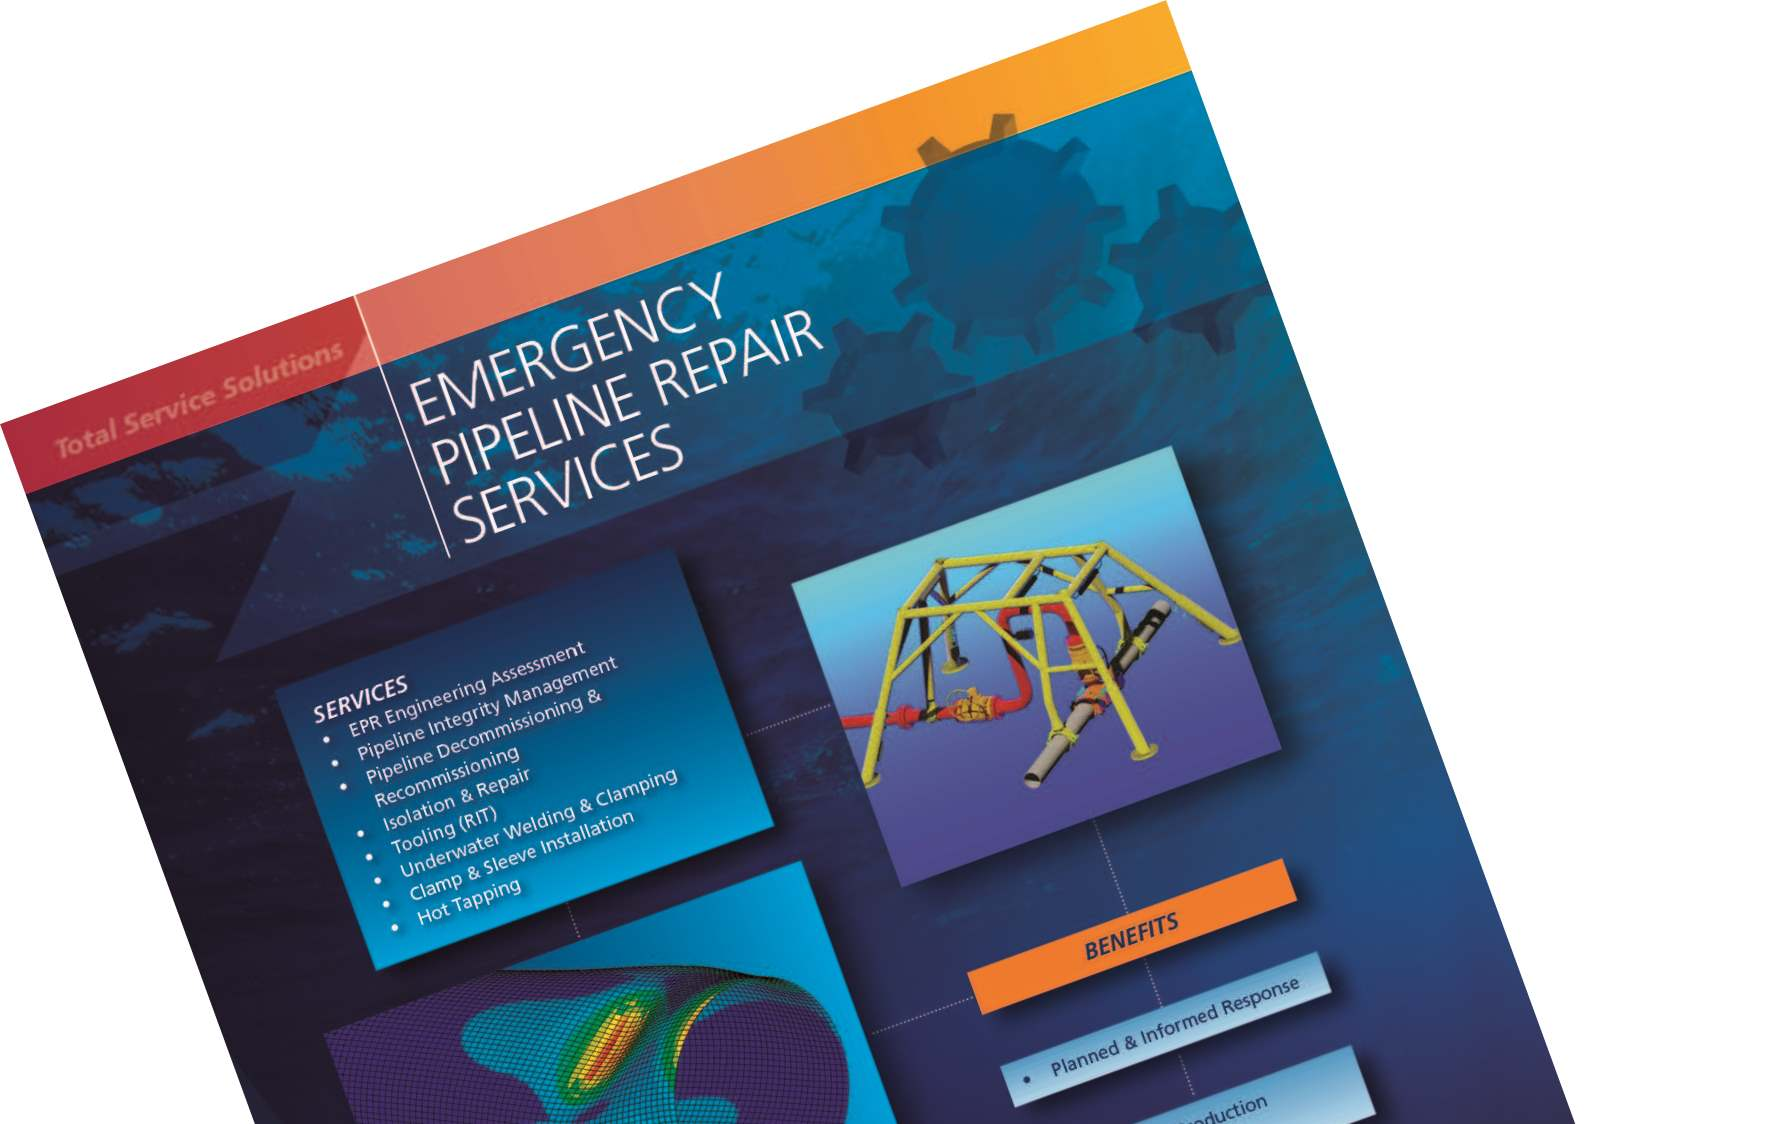 Emergency Pipeline Repair Services Brochure